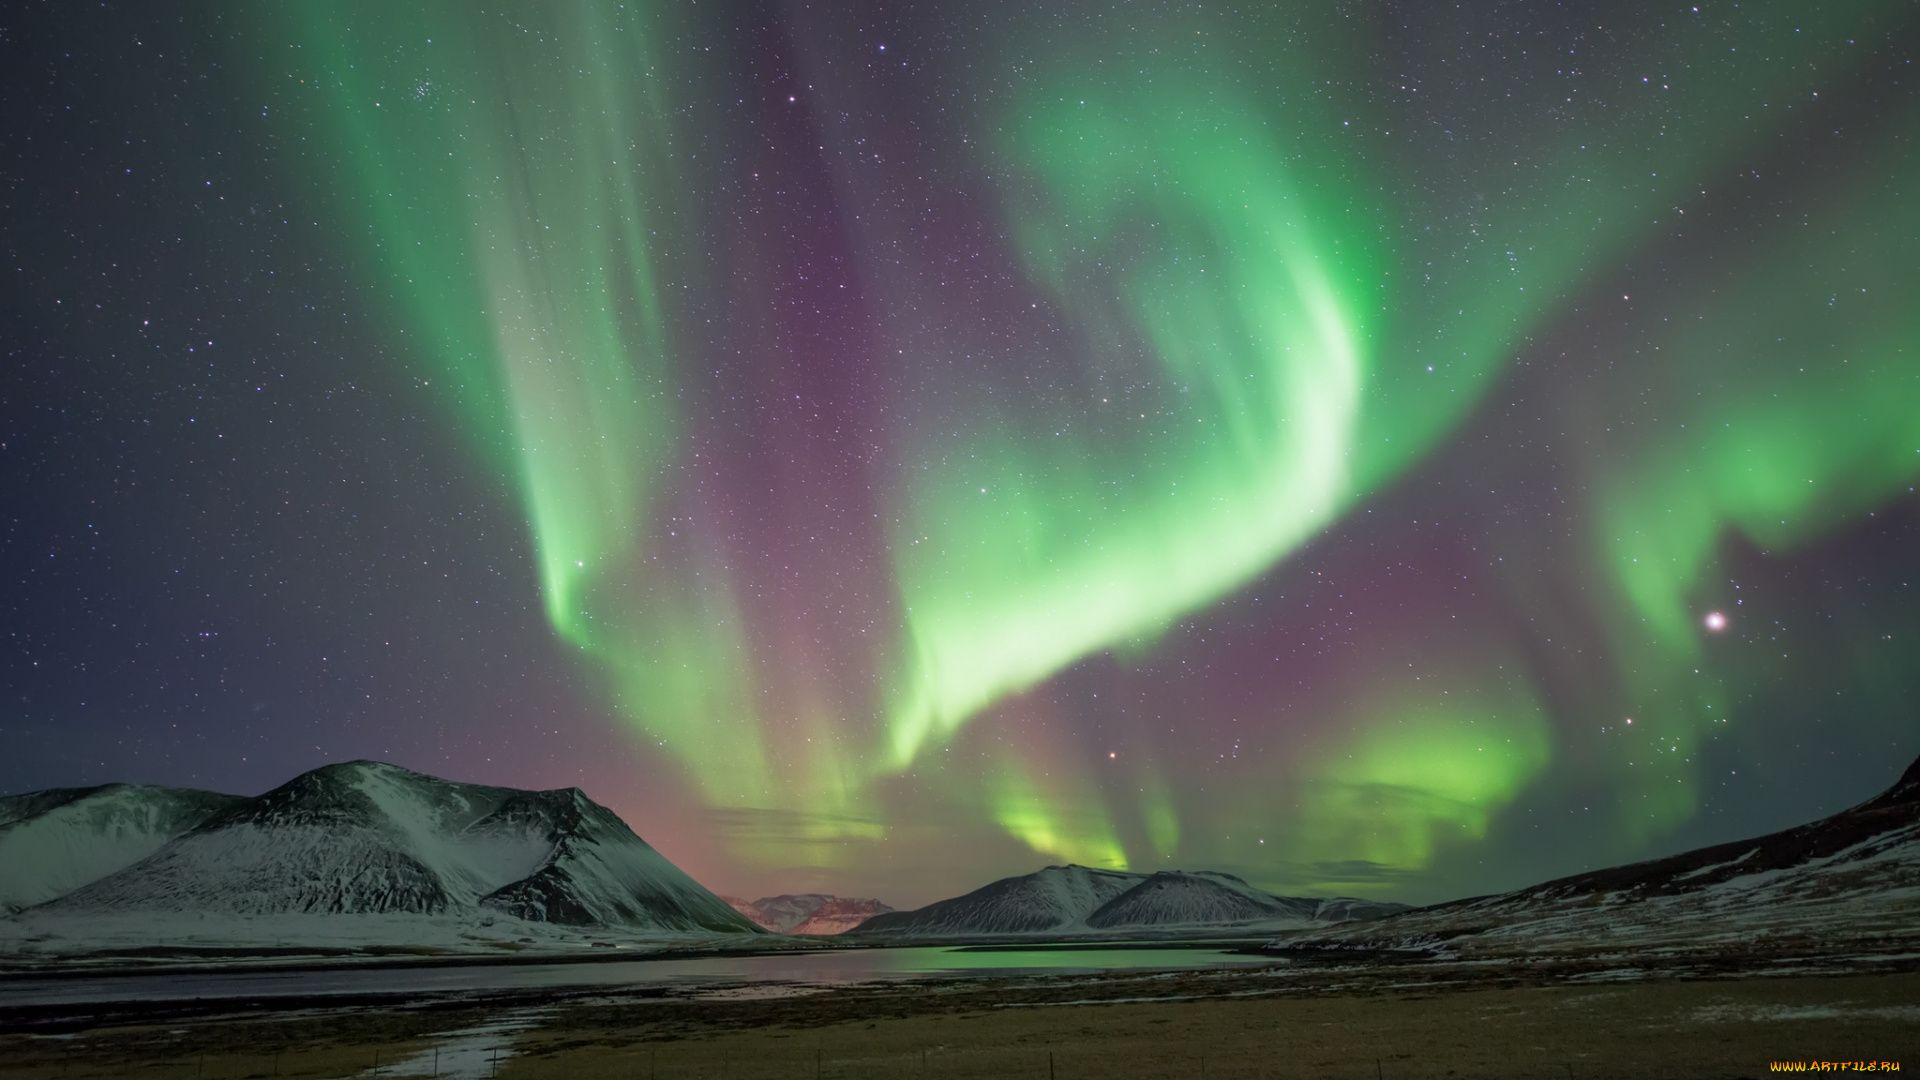 The Wallpapers Of Northern Lights